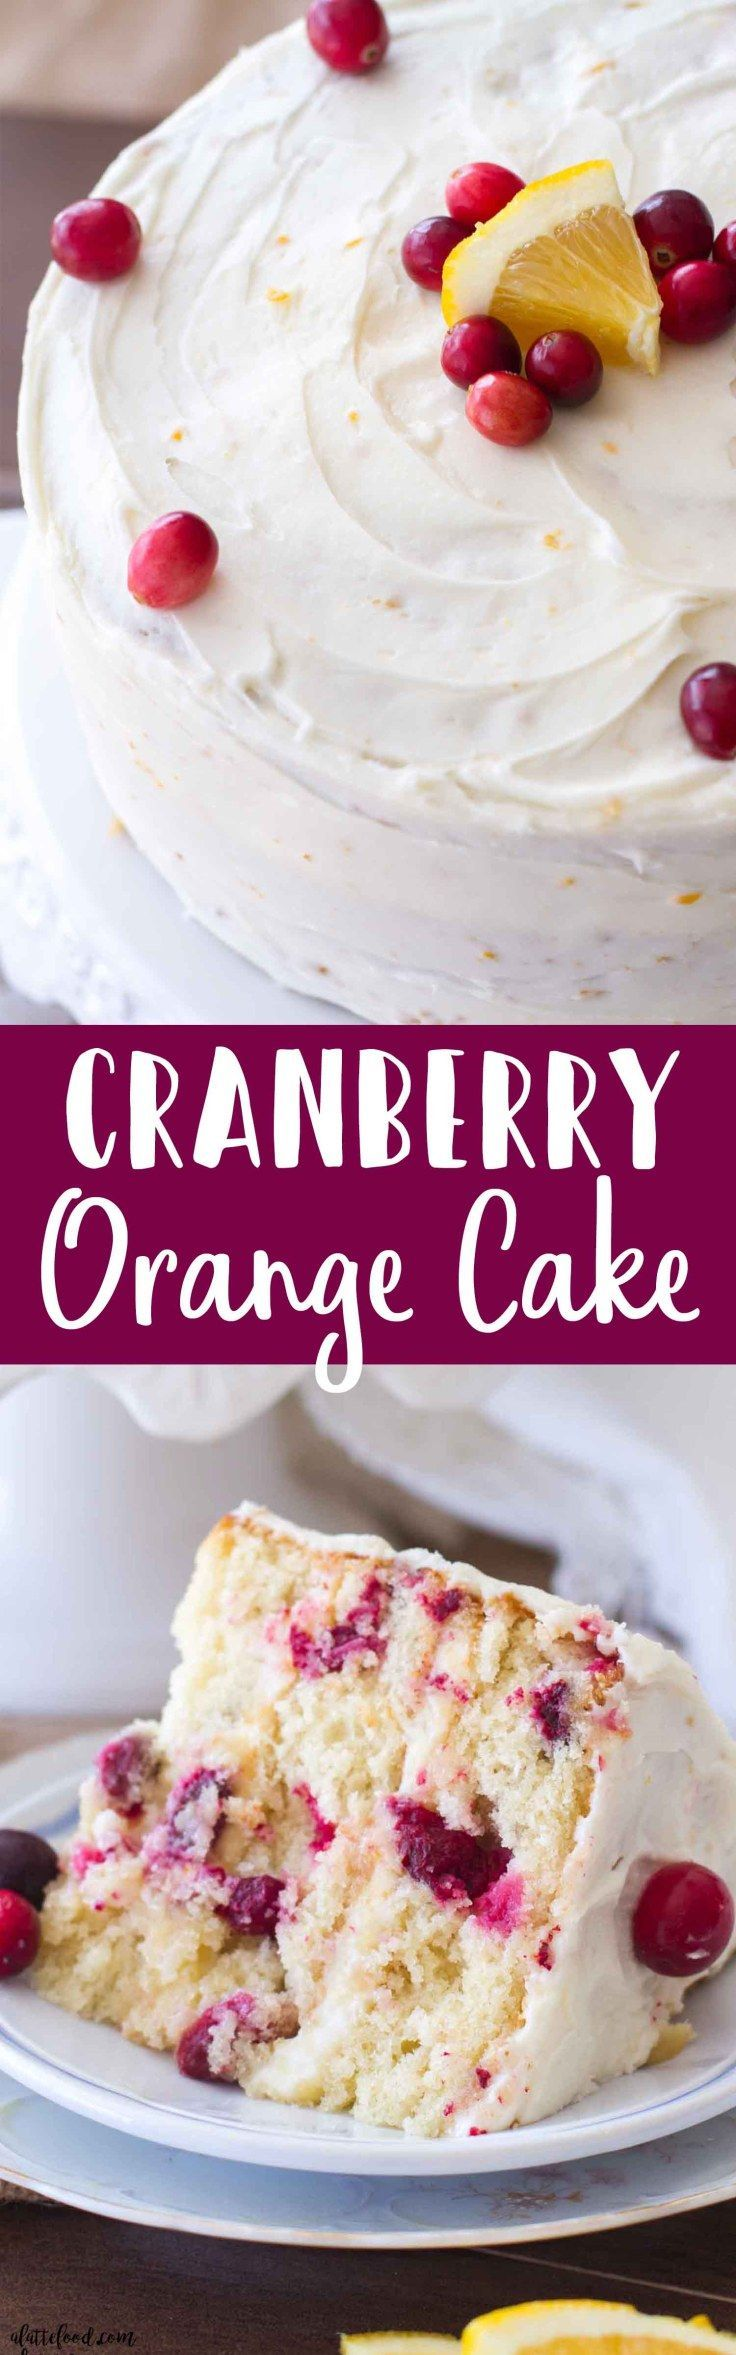 This easy cranberry orange cake is the perfect Christmas dessert! Loaded with cranberries and sweet orange flavor, this homemade cranberry orange cake recipe is a family favorite! Plus, this is topped with an orange cream cheese frosting that is rich, creamy, and ultra-delish! #wineglasswriter